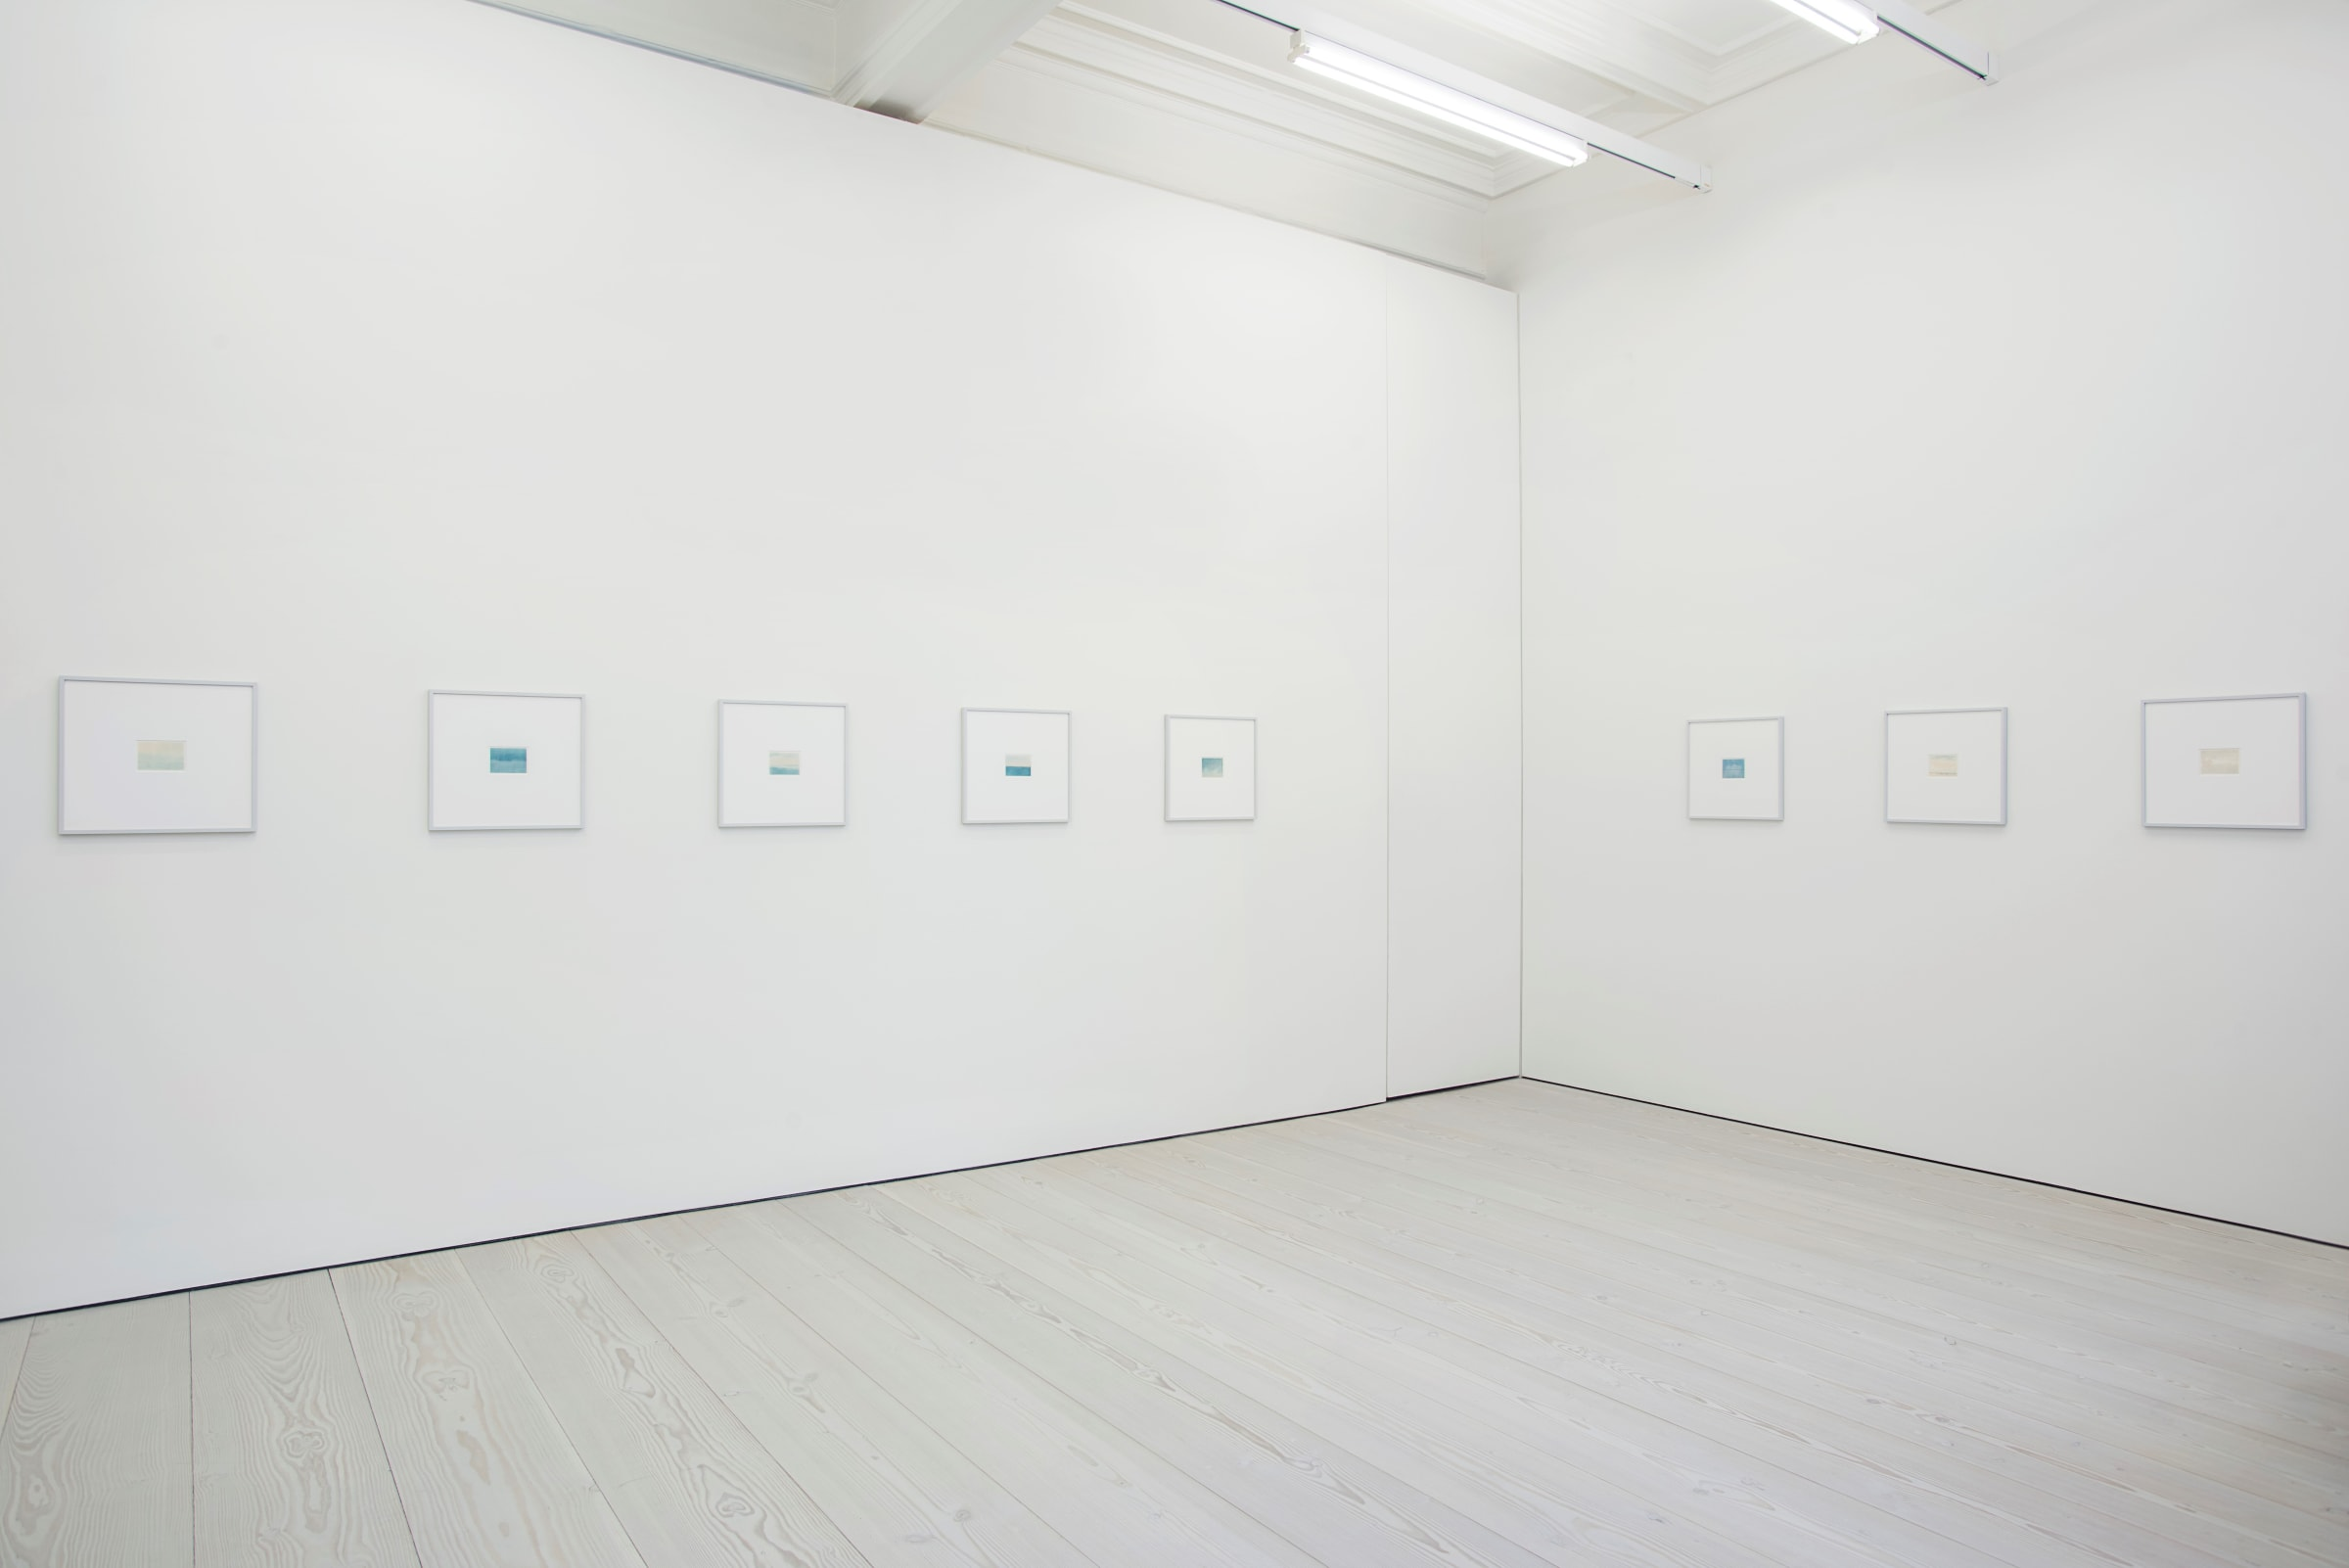 In a white space, 8 small drawings, 5 on the left wall and 3 on the right, hang. They are framed in white, and mostly made up of blues and yellows, like sunsets.